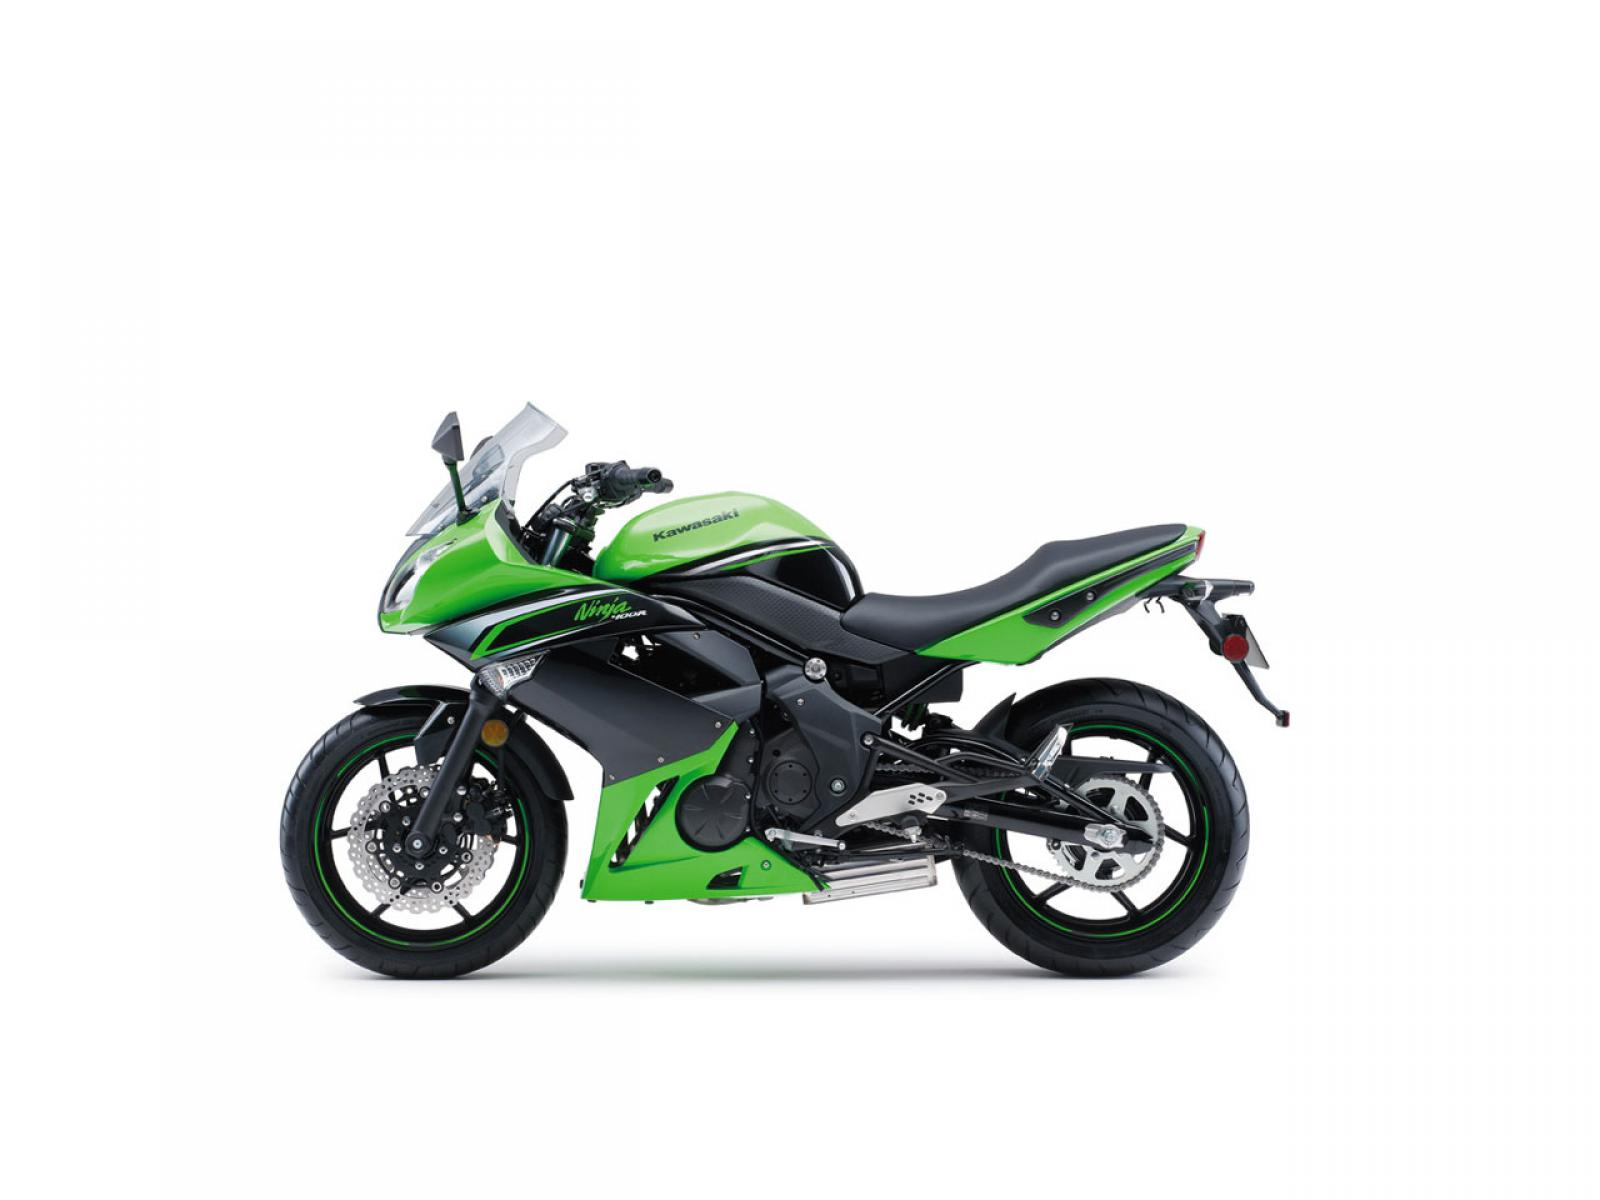 2013 kawasaki ninja 400r moto zombdrive com. Black Bedroom Furniture Sets. Home Design Ideas